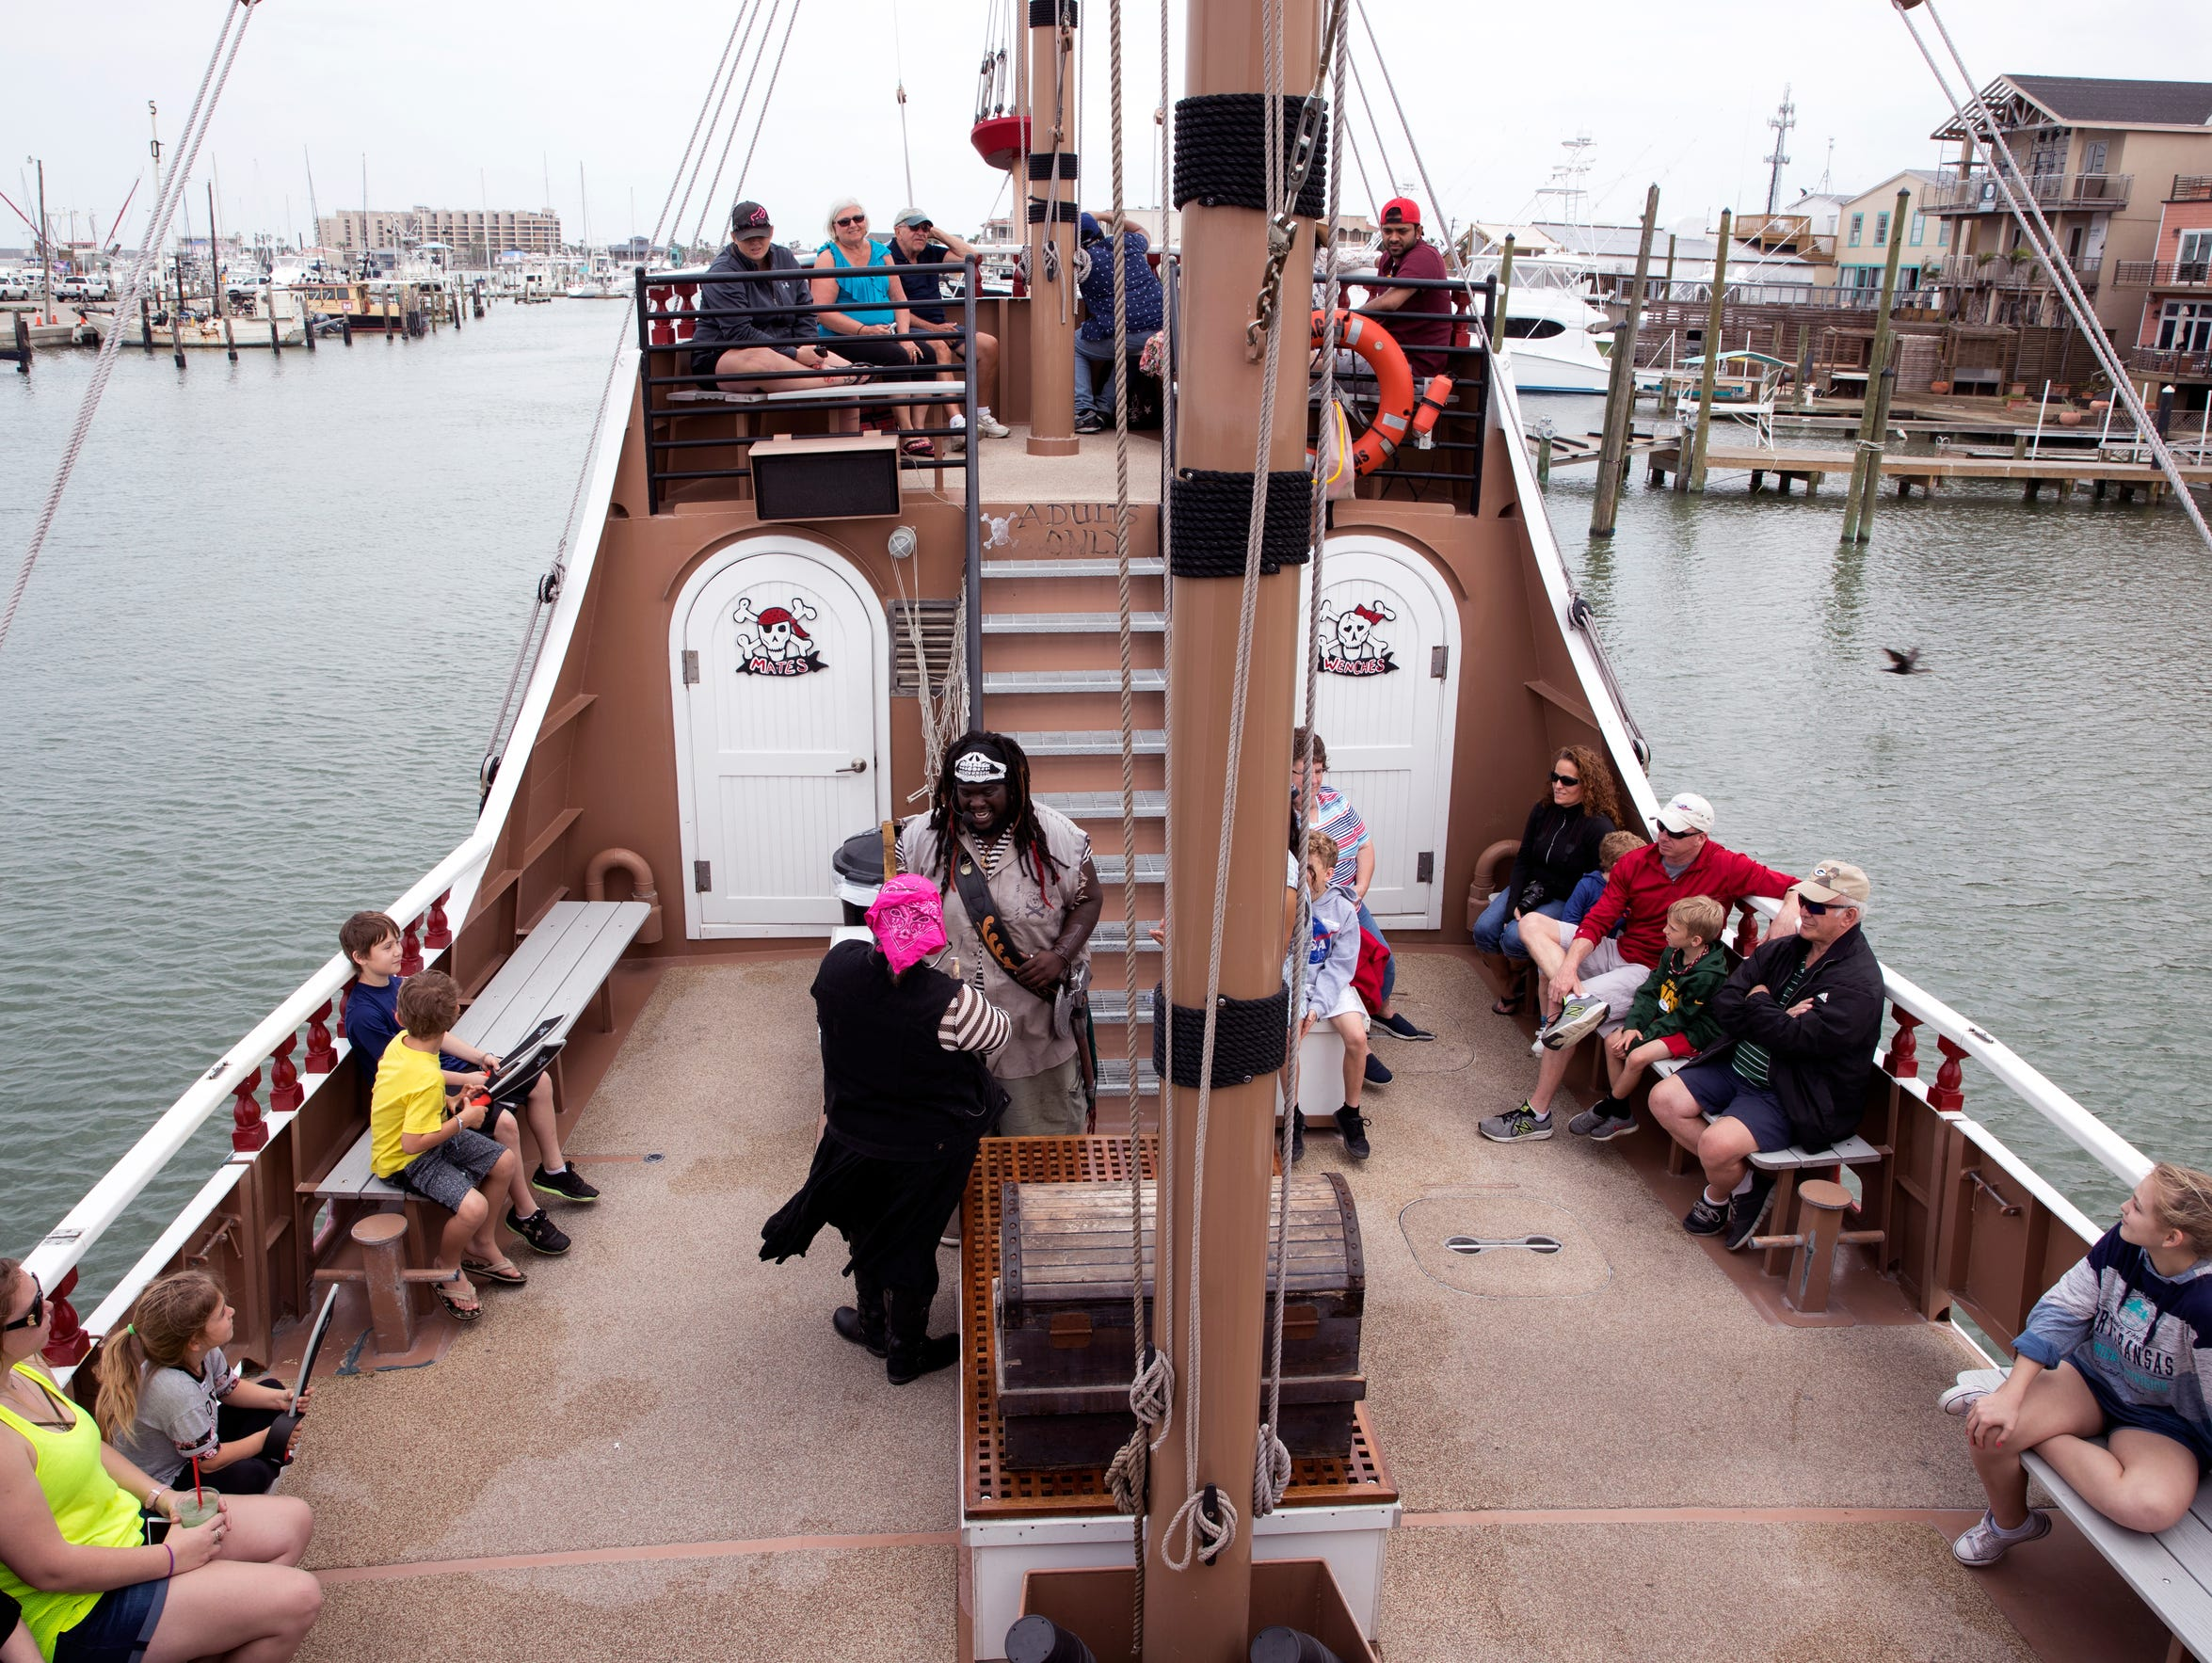 The Red Dragon embarks on a pirate cruise on Sunday,